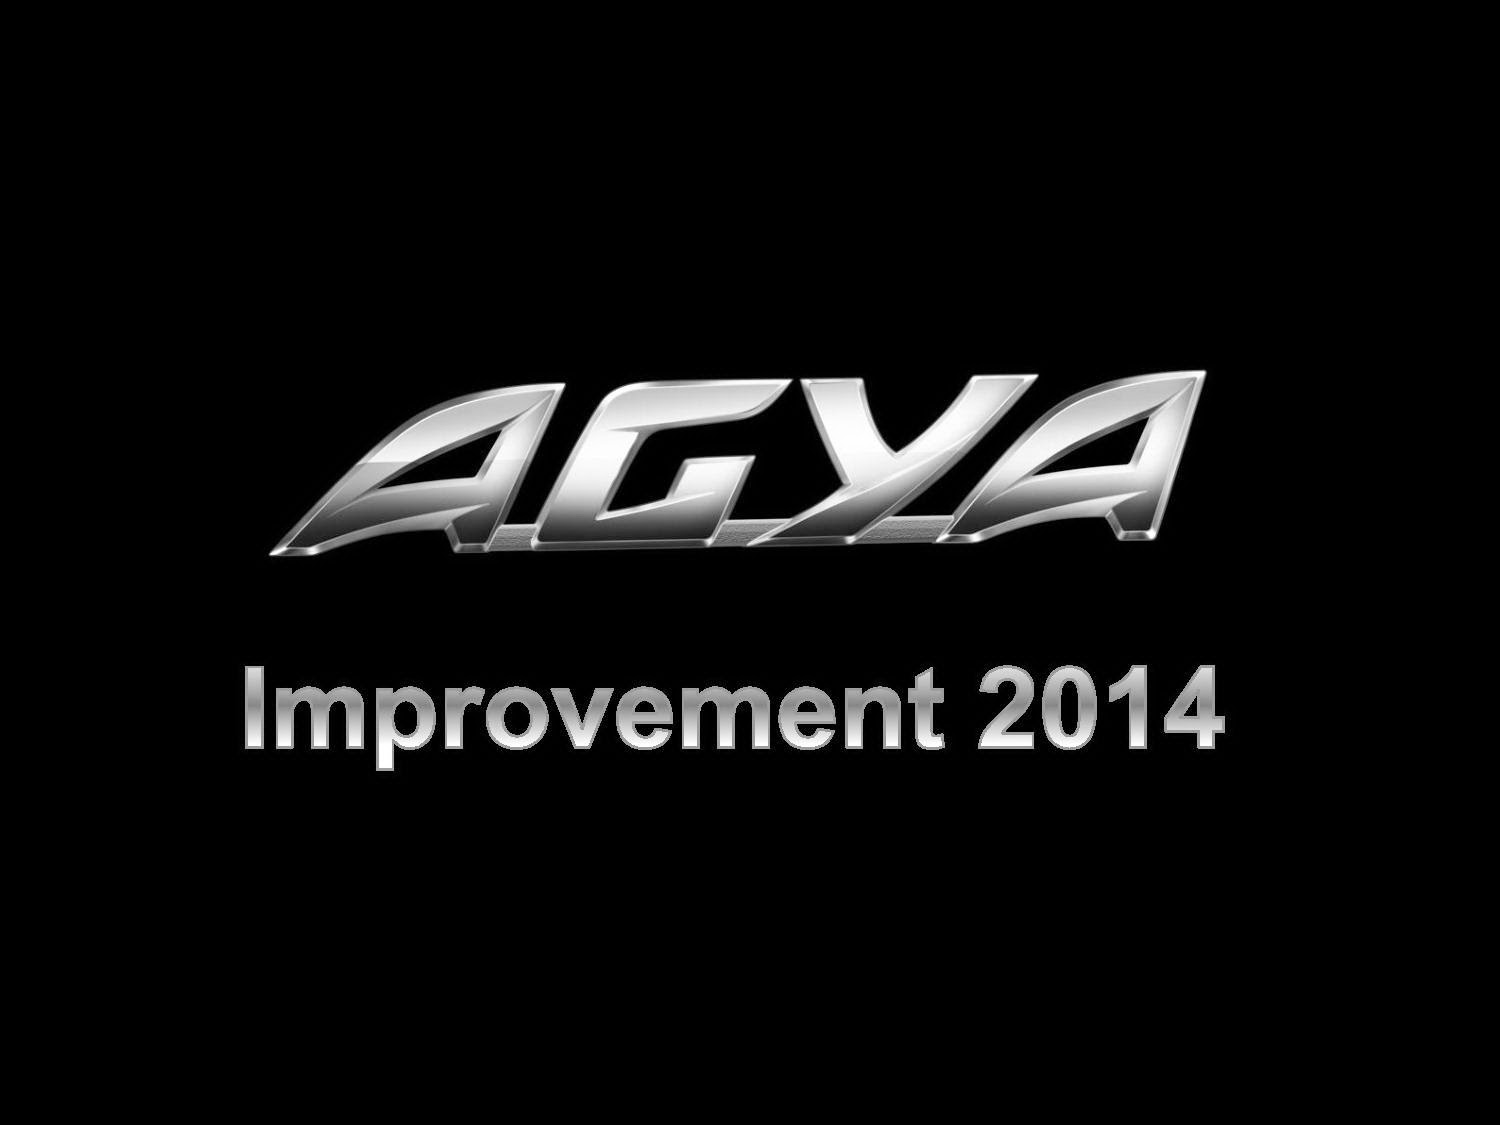 AGYA IMPROVEMENT